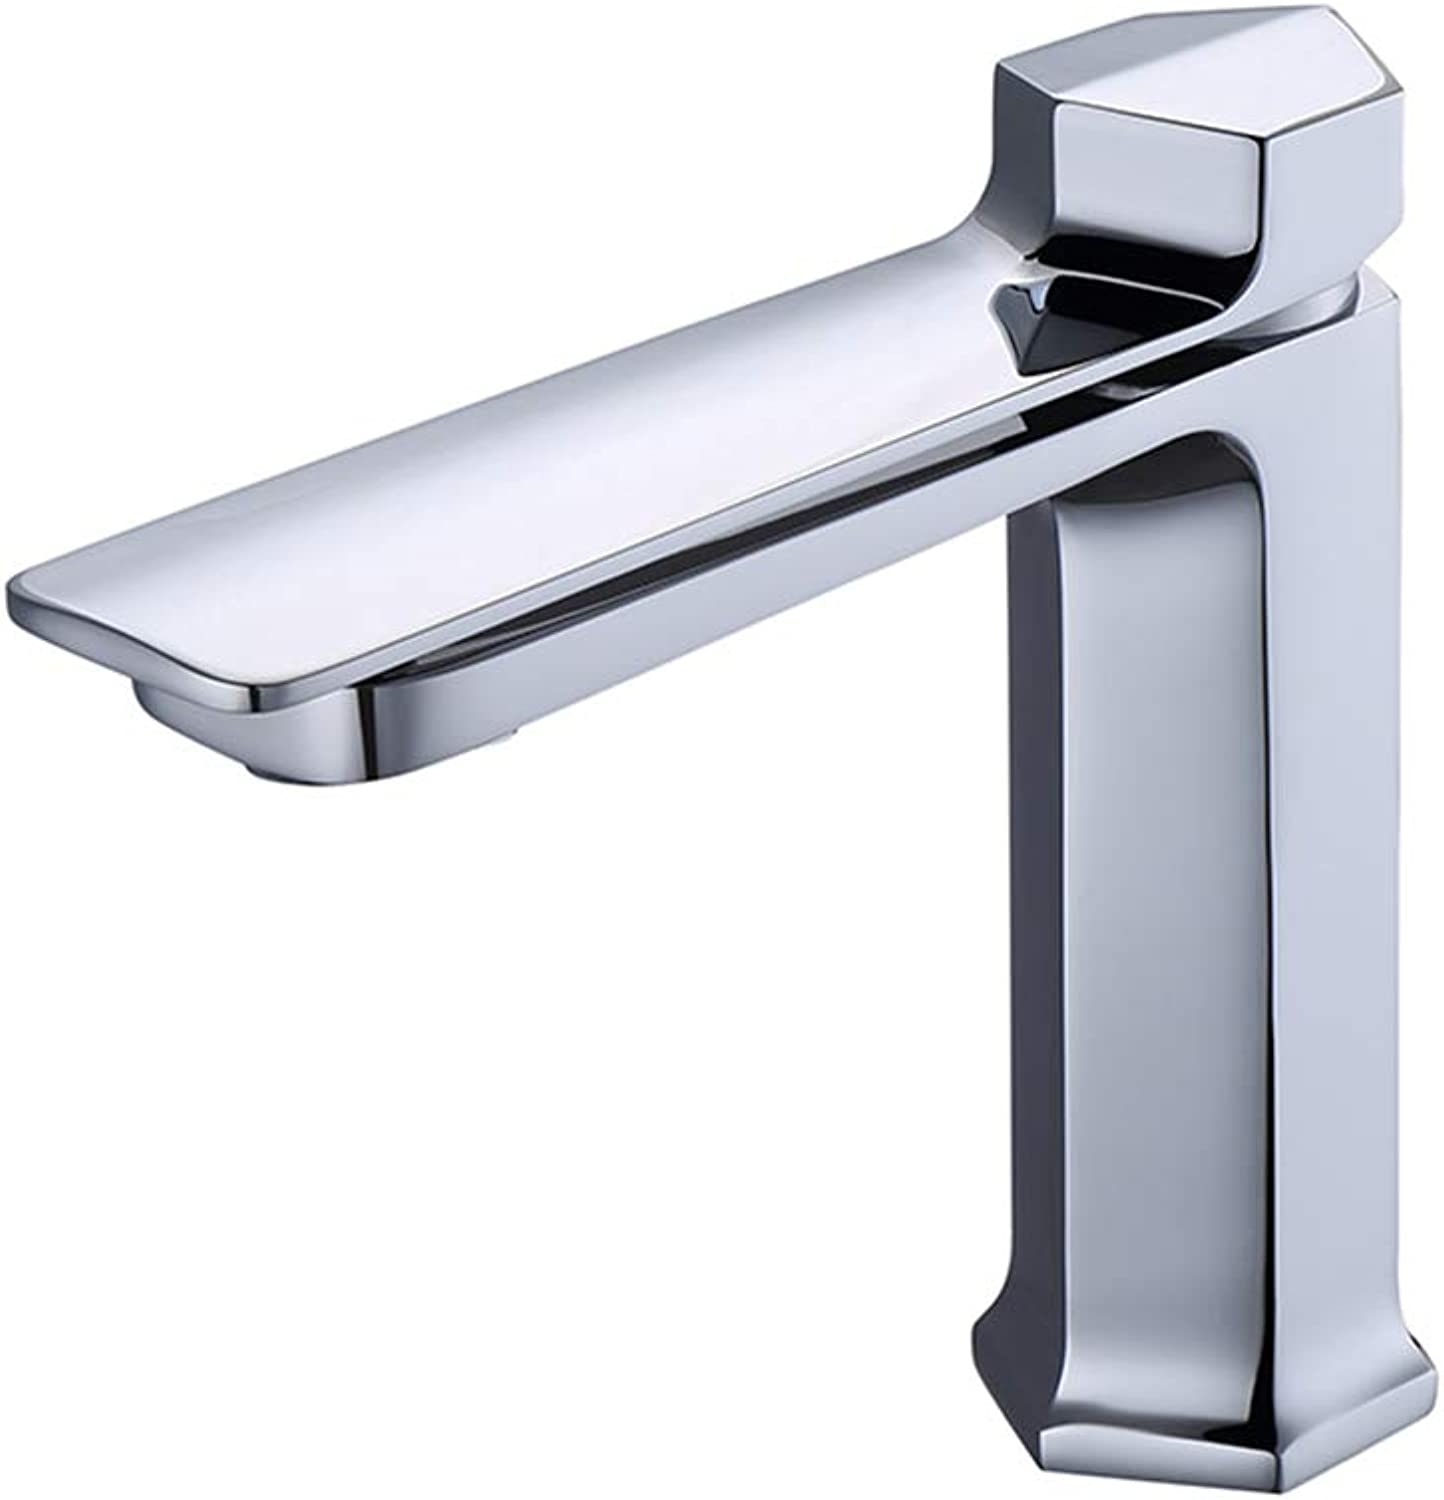 IFELGUD New Chrome Basin Faucet Mirror Tap Hot and Cold Water Mixer Faucet Single Handle Pull up Kitchen Mixer